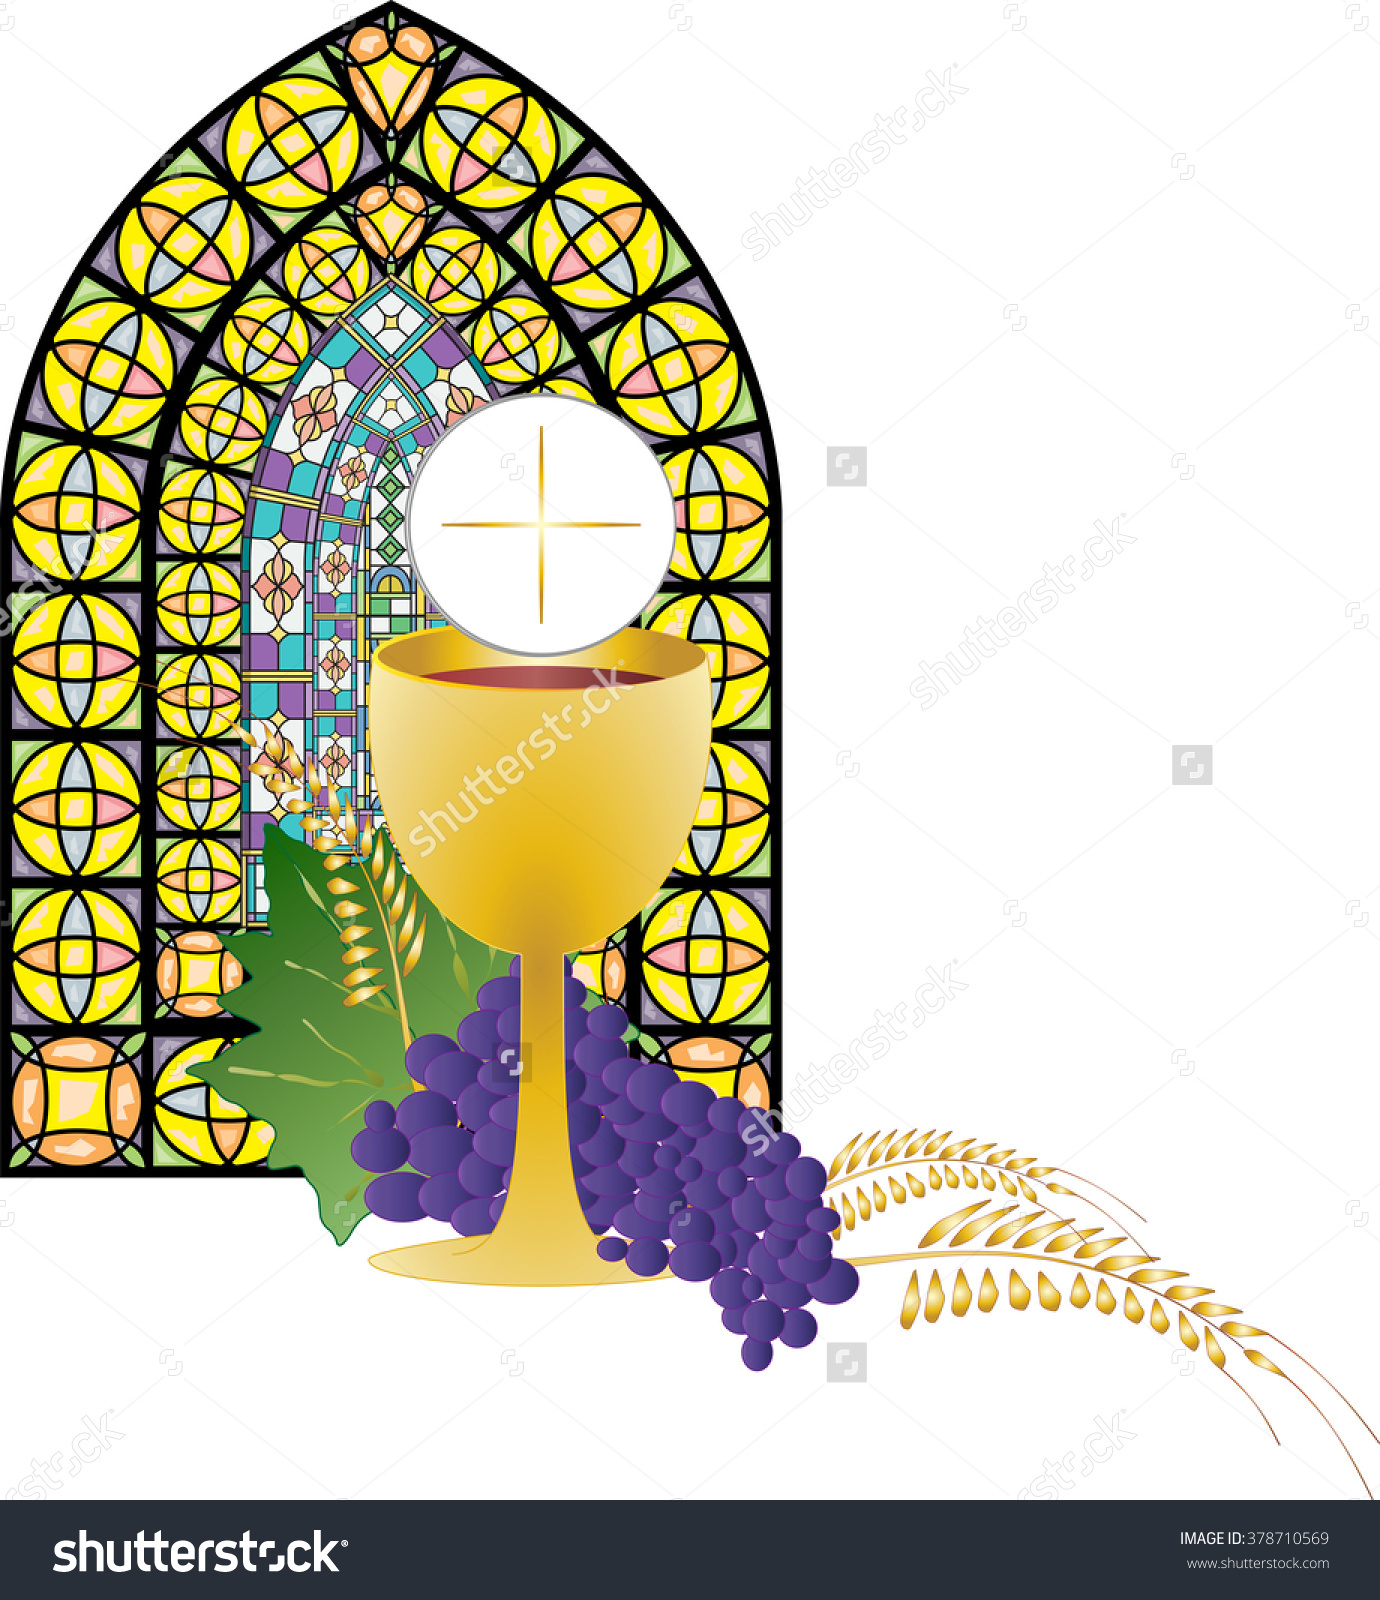 Stained Glass clipart eucharist Chalice Wine Bread collection Symbol